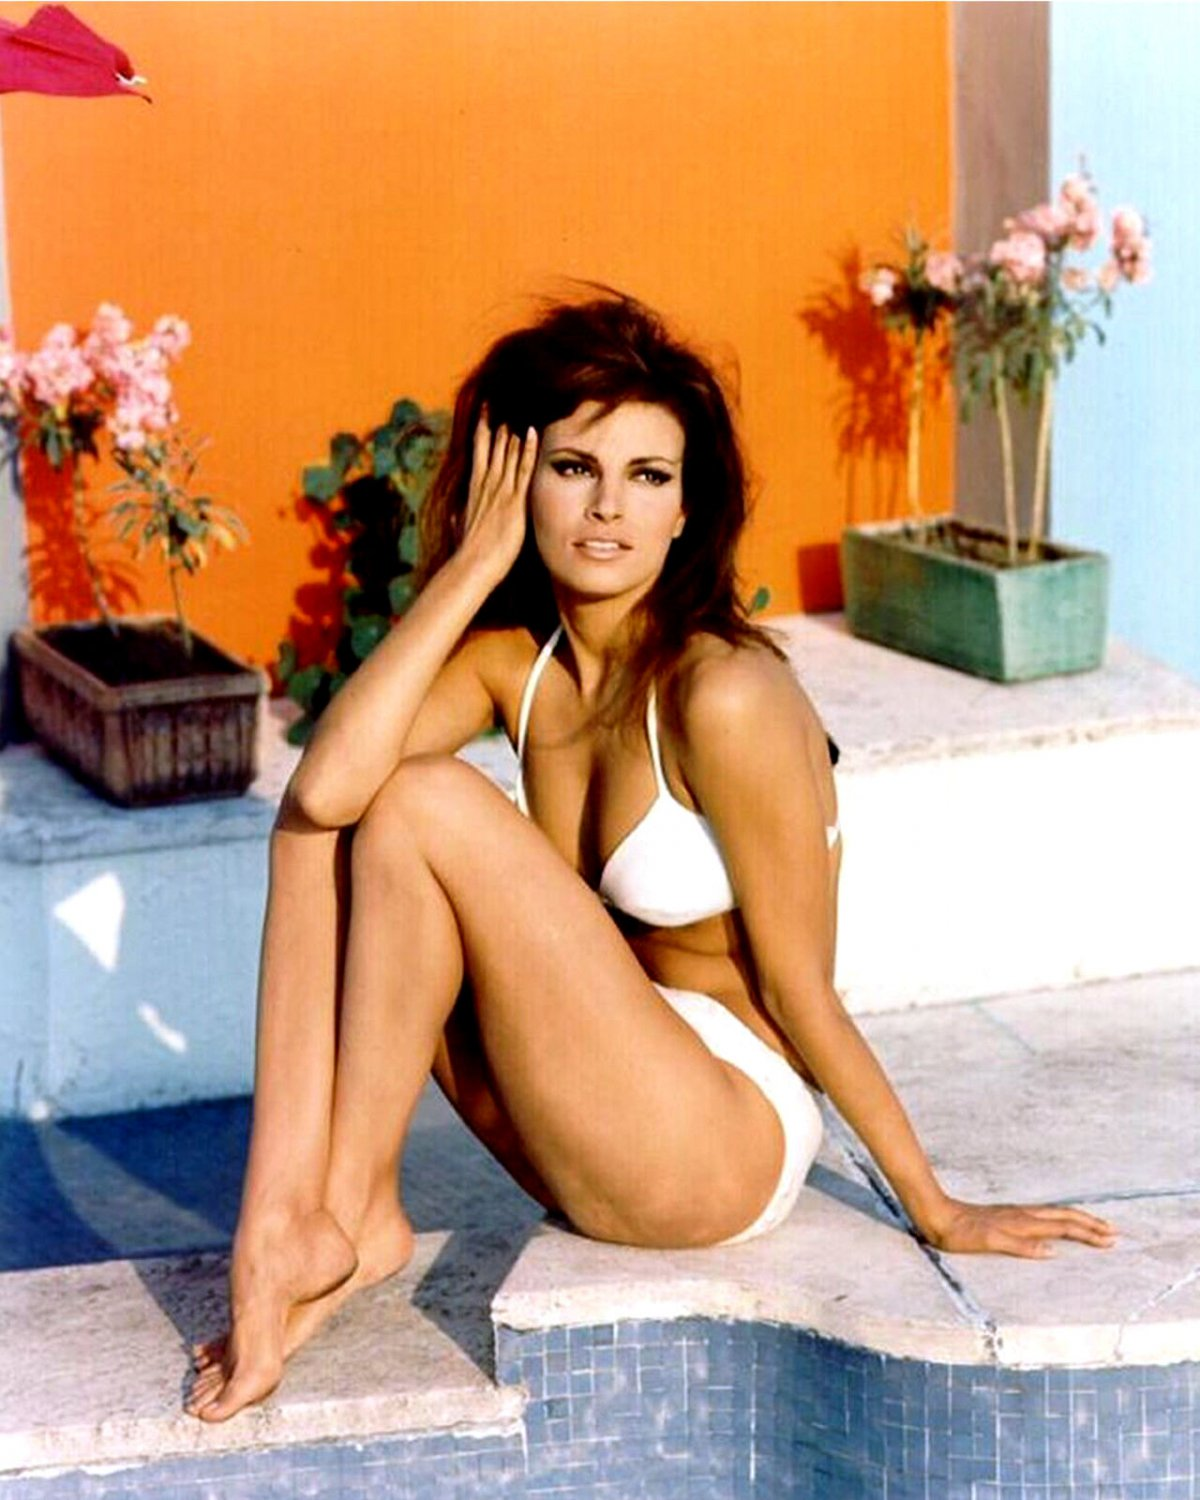 ACTRESS RAQUEL WELCH PHOTO SIX-PACK - (6) 8X10 PUBLICITY PHOTOS (SP-A01)